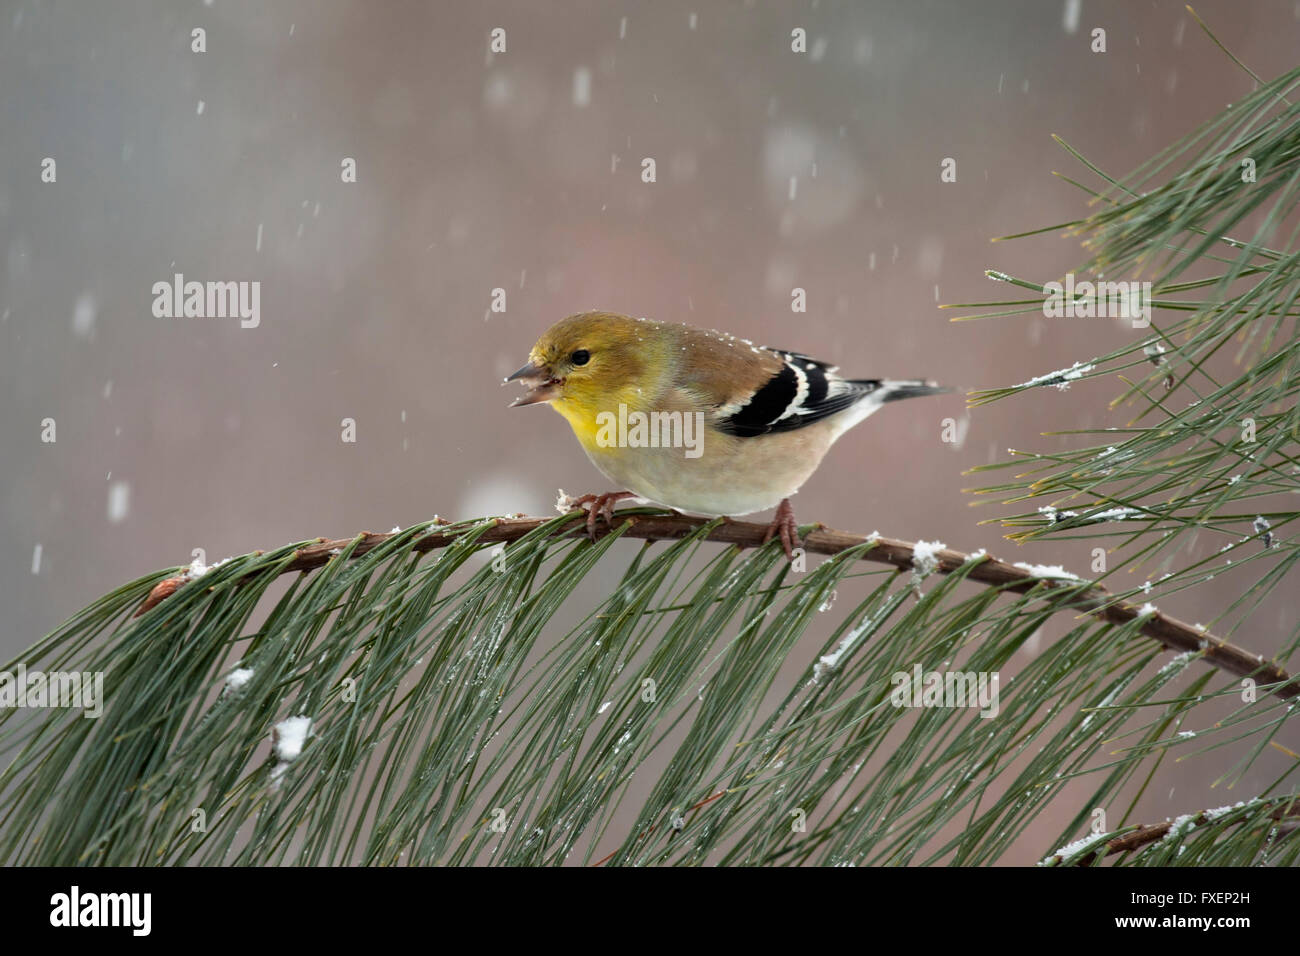 Goldfinch chirps while perched on pine branch in winter - Stock Image